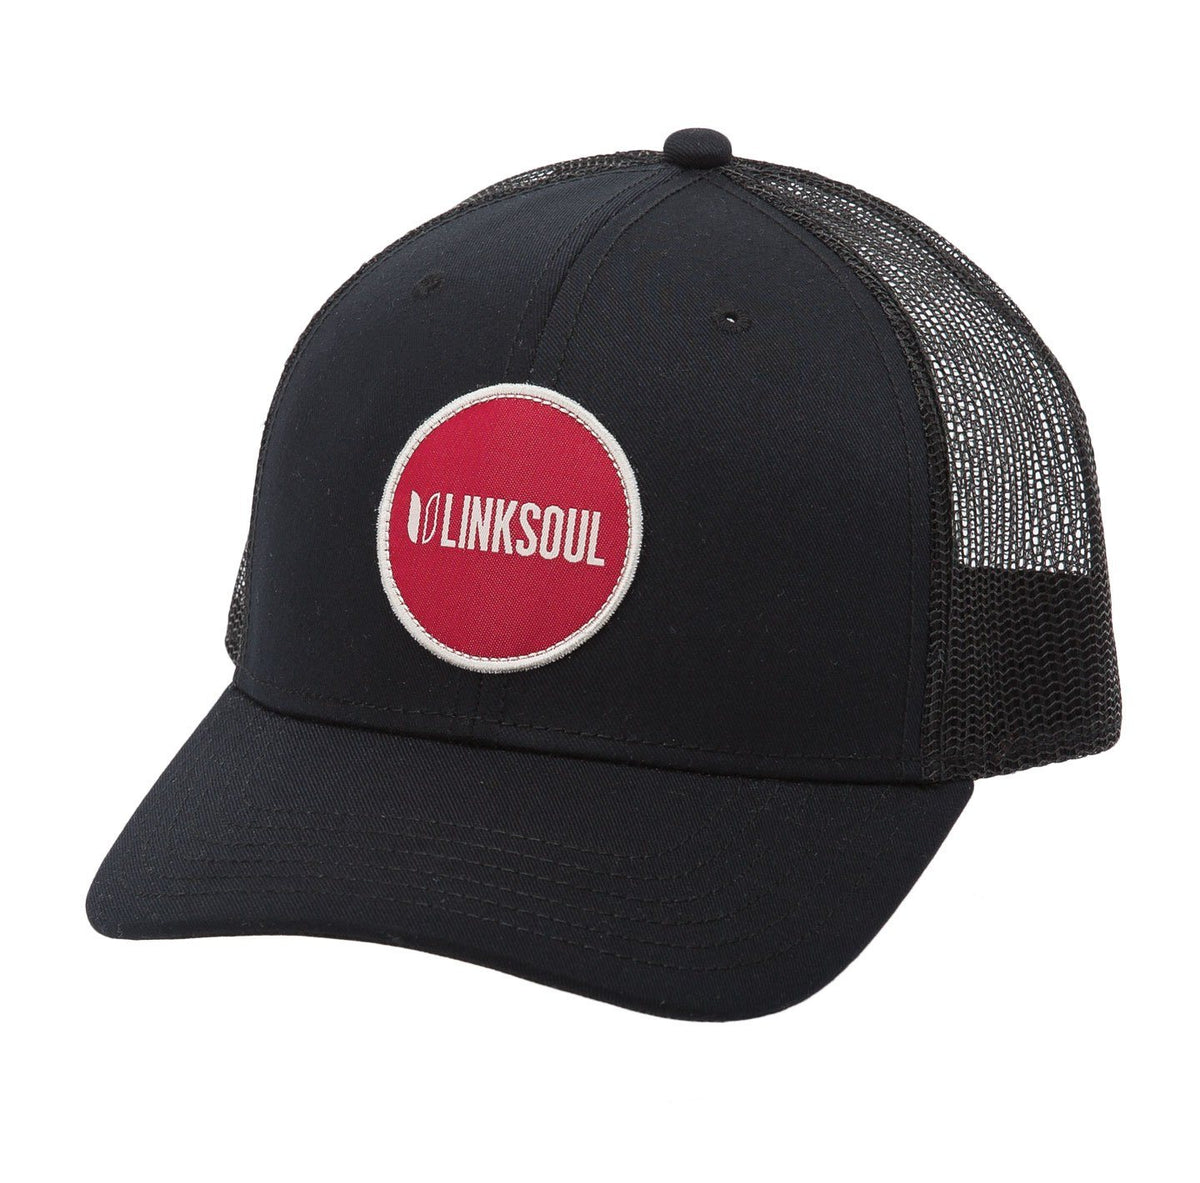 Linksoul Crewman Hat